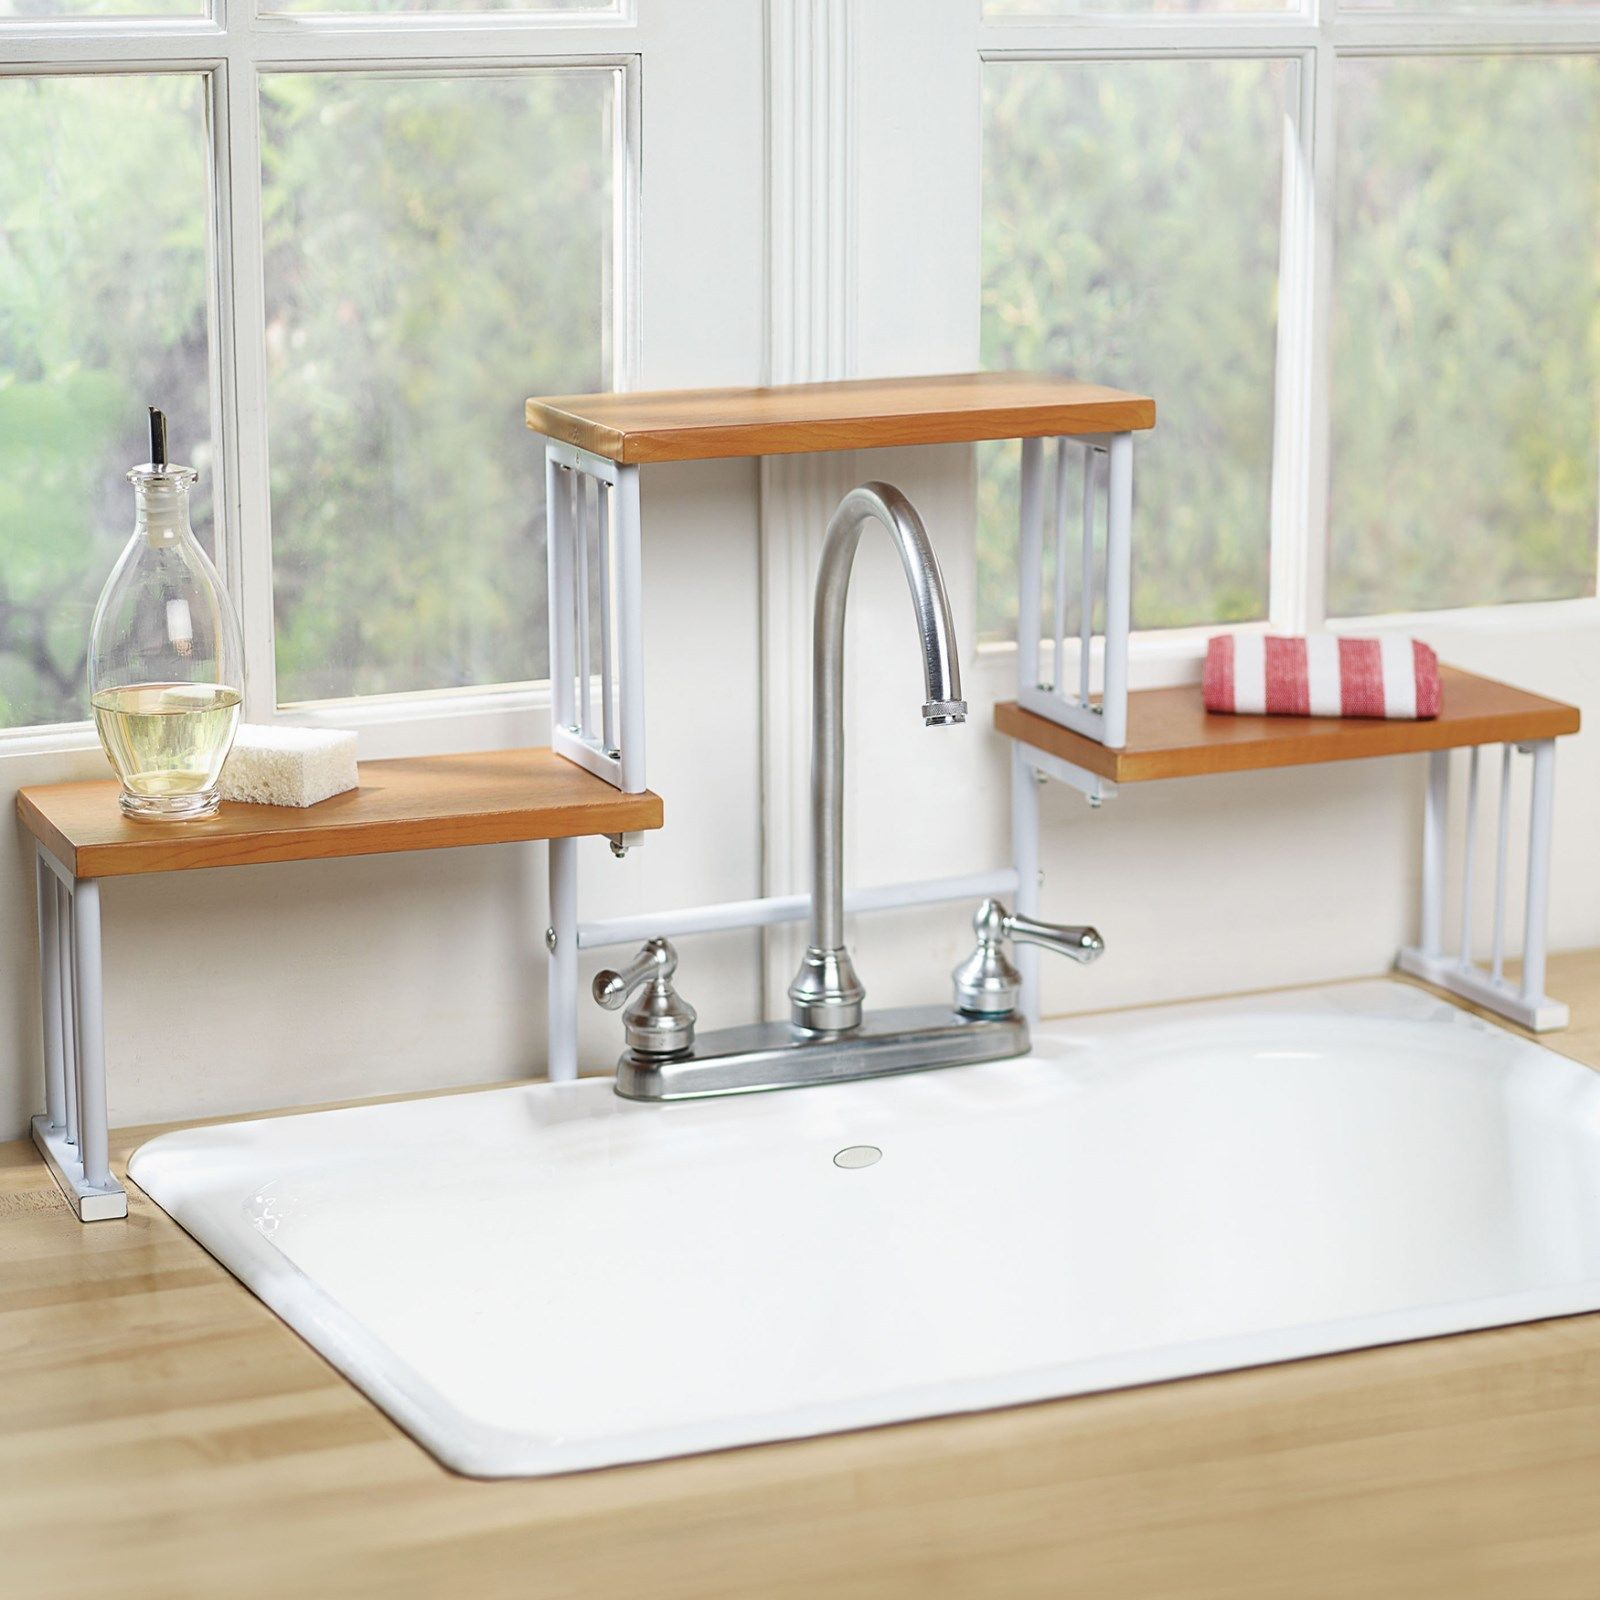 Cake Stand Kitchen Sink